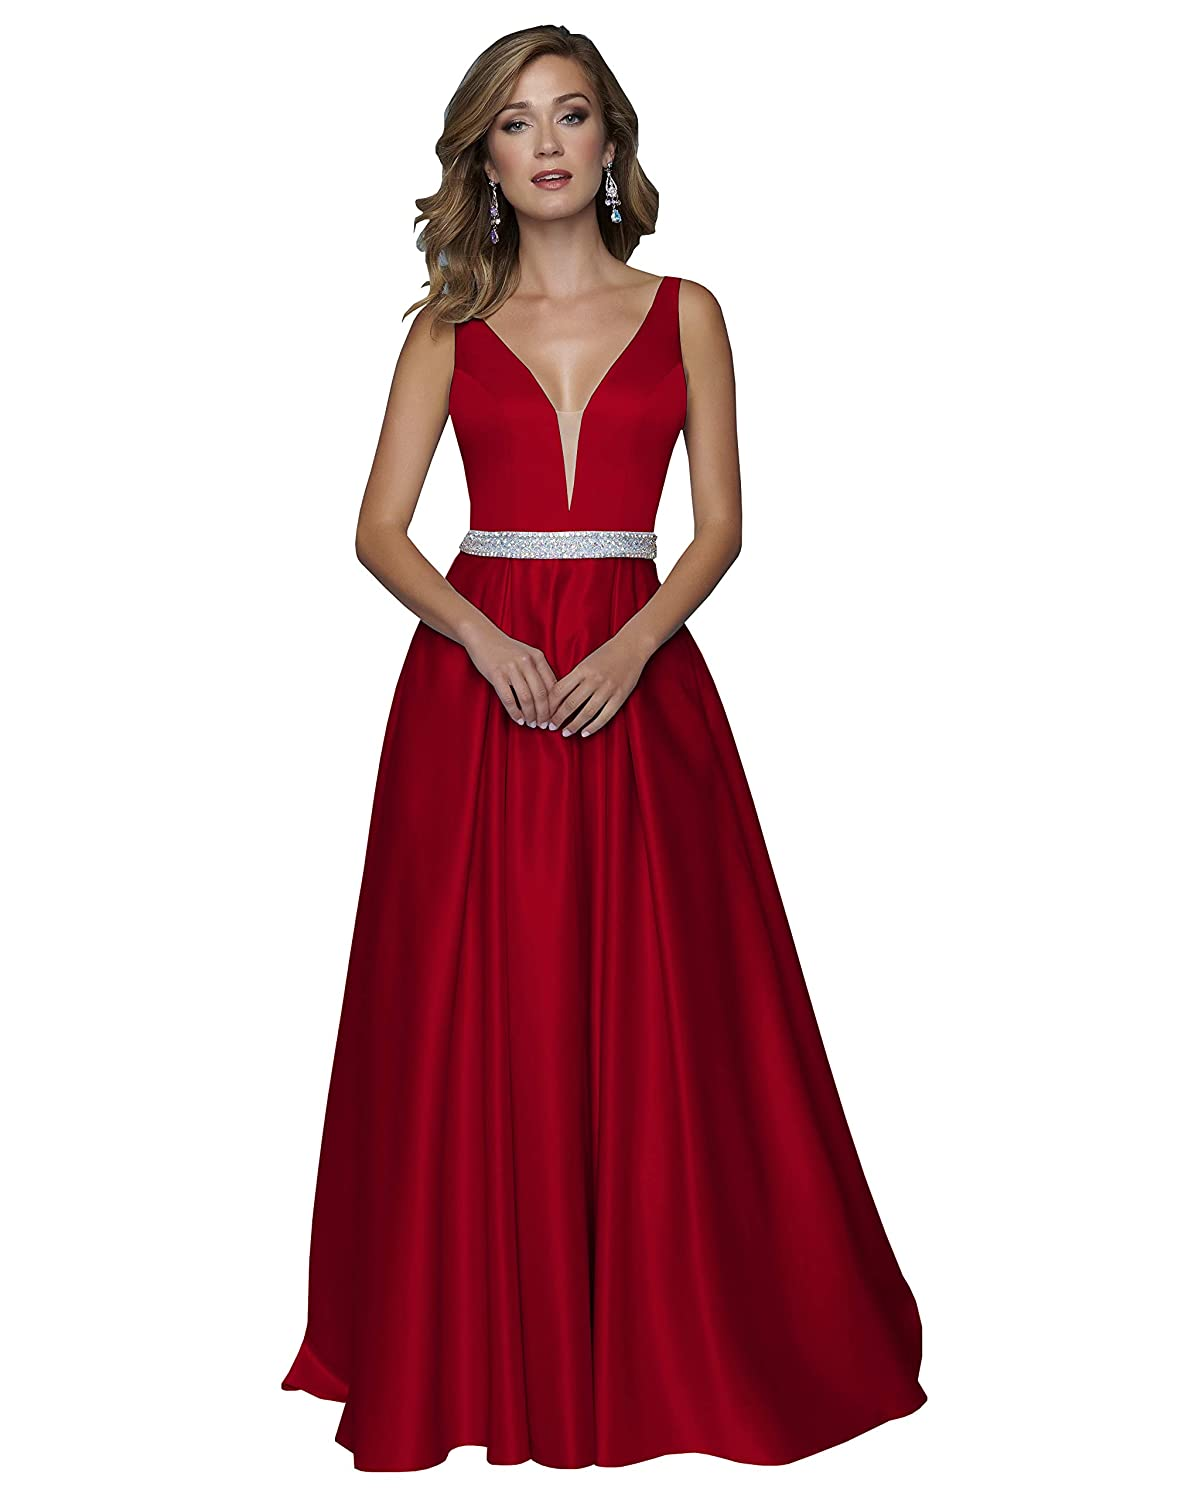 Now and Forever Womens A-Line V Neck Satin Prom Dresses Long Formal Gown with Pockets Beaded Belt